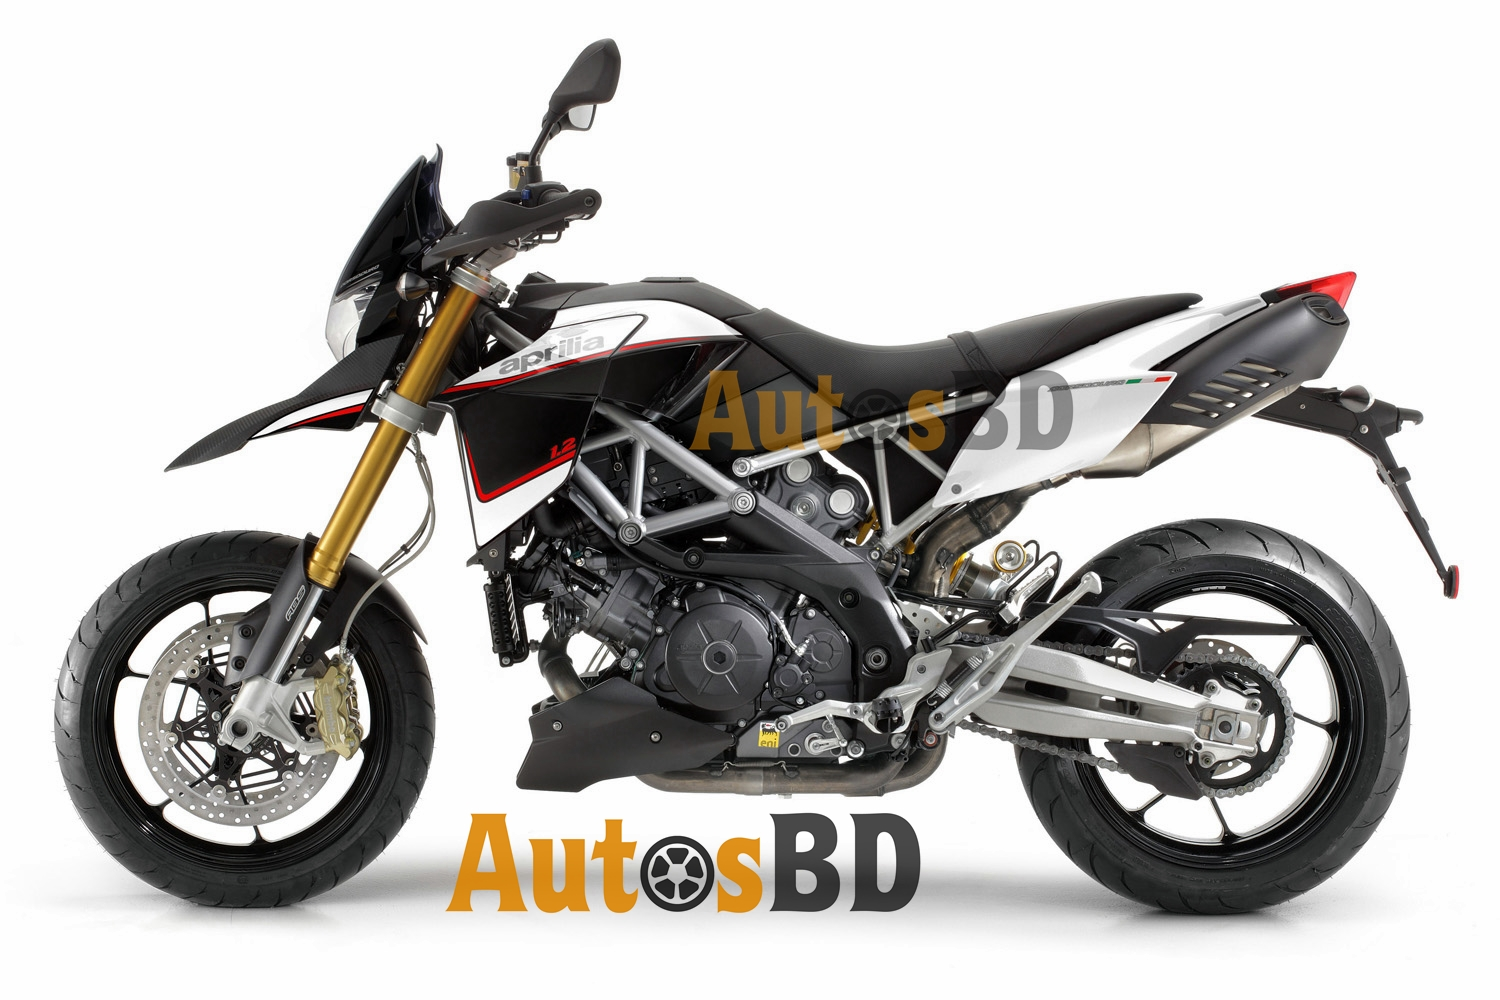 Aprilia Dorsoduro 1200 ABS Motorcycle Specification